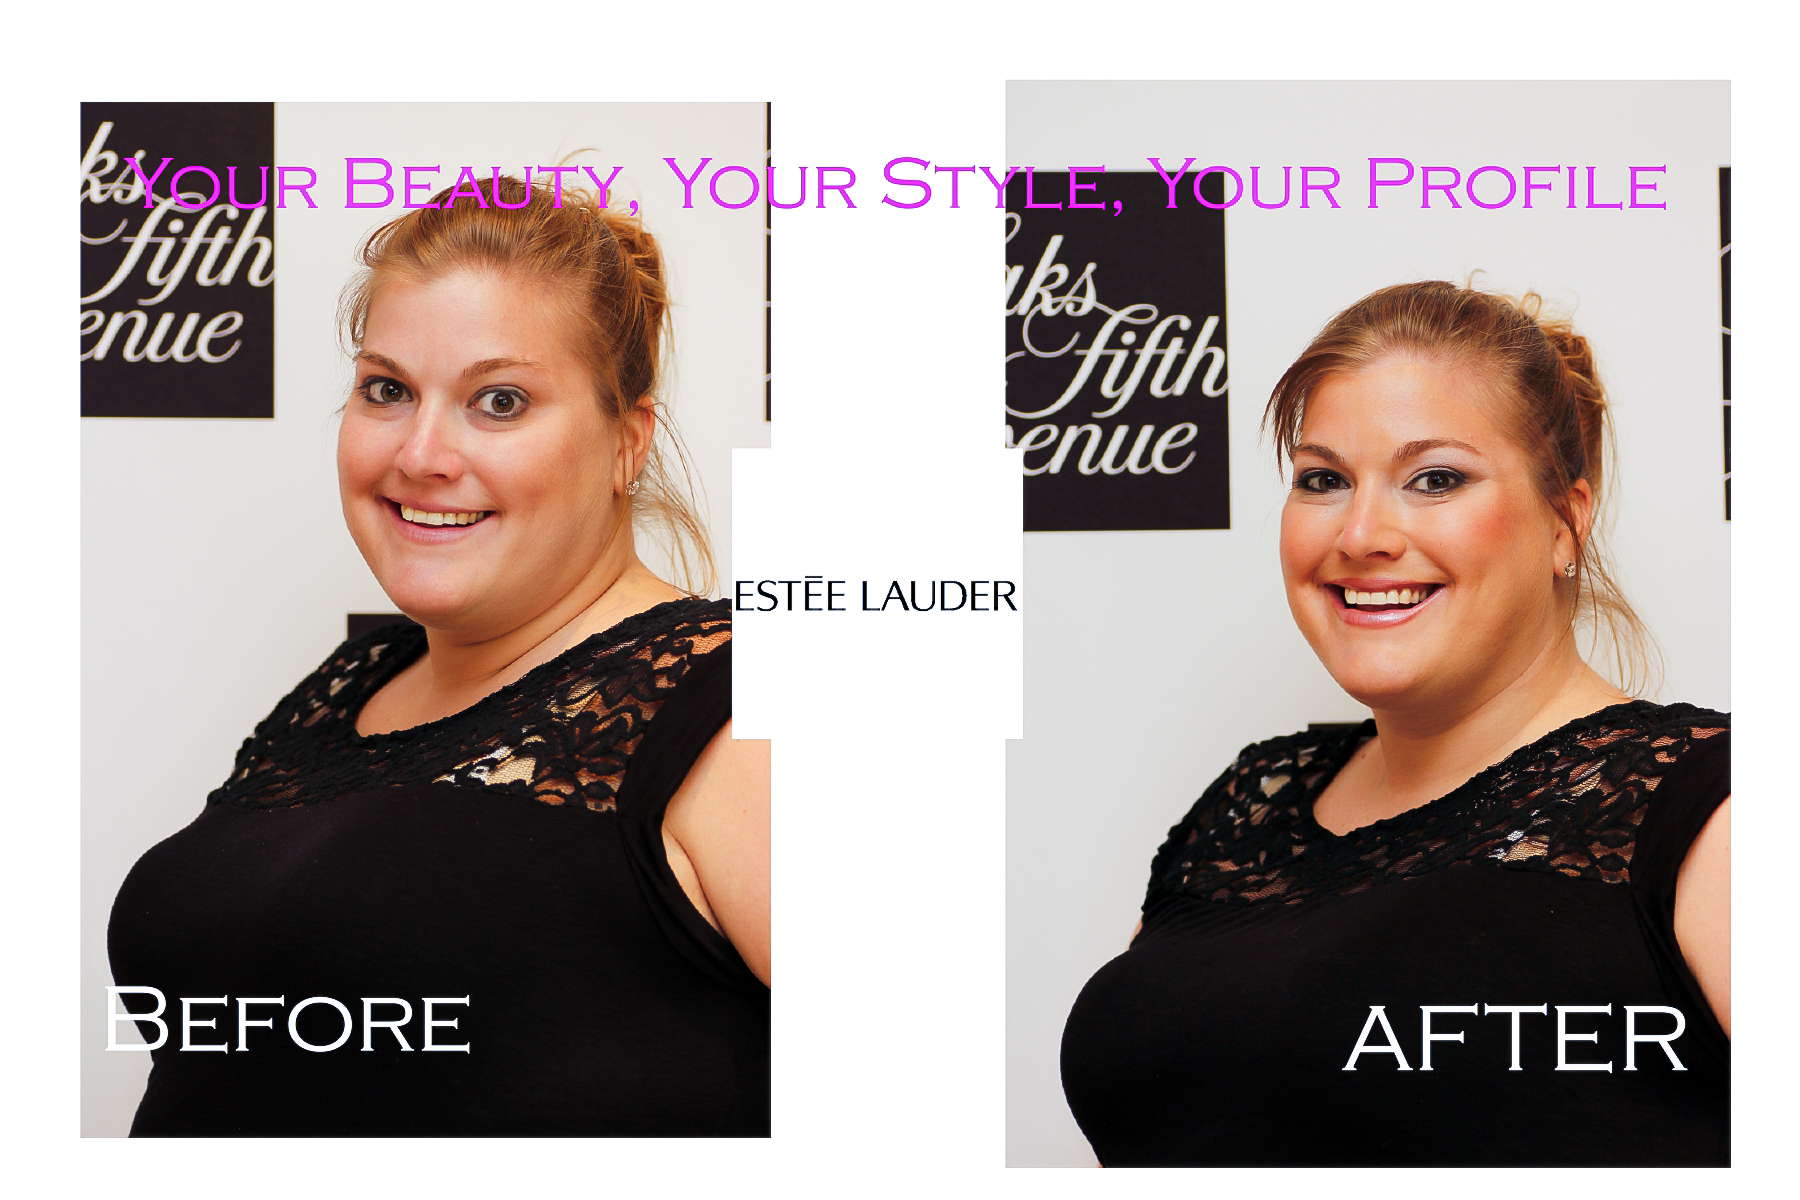 Estee Lauder Before & After